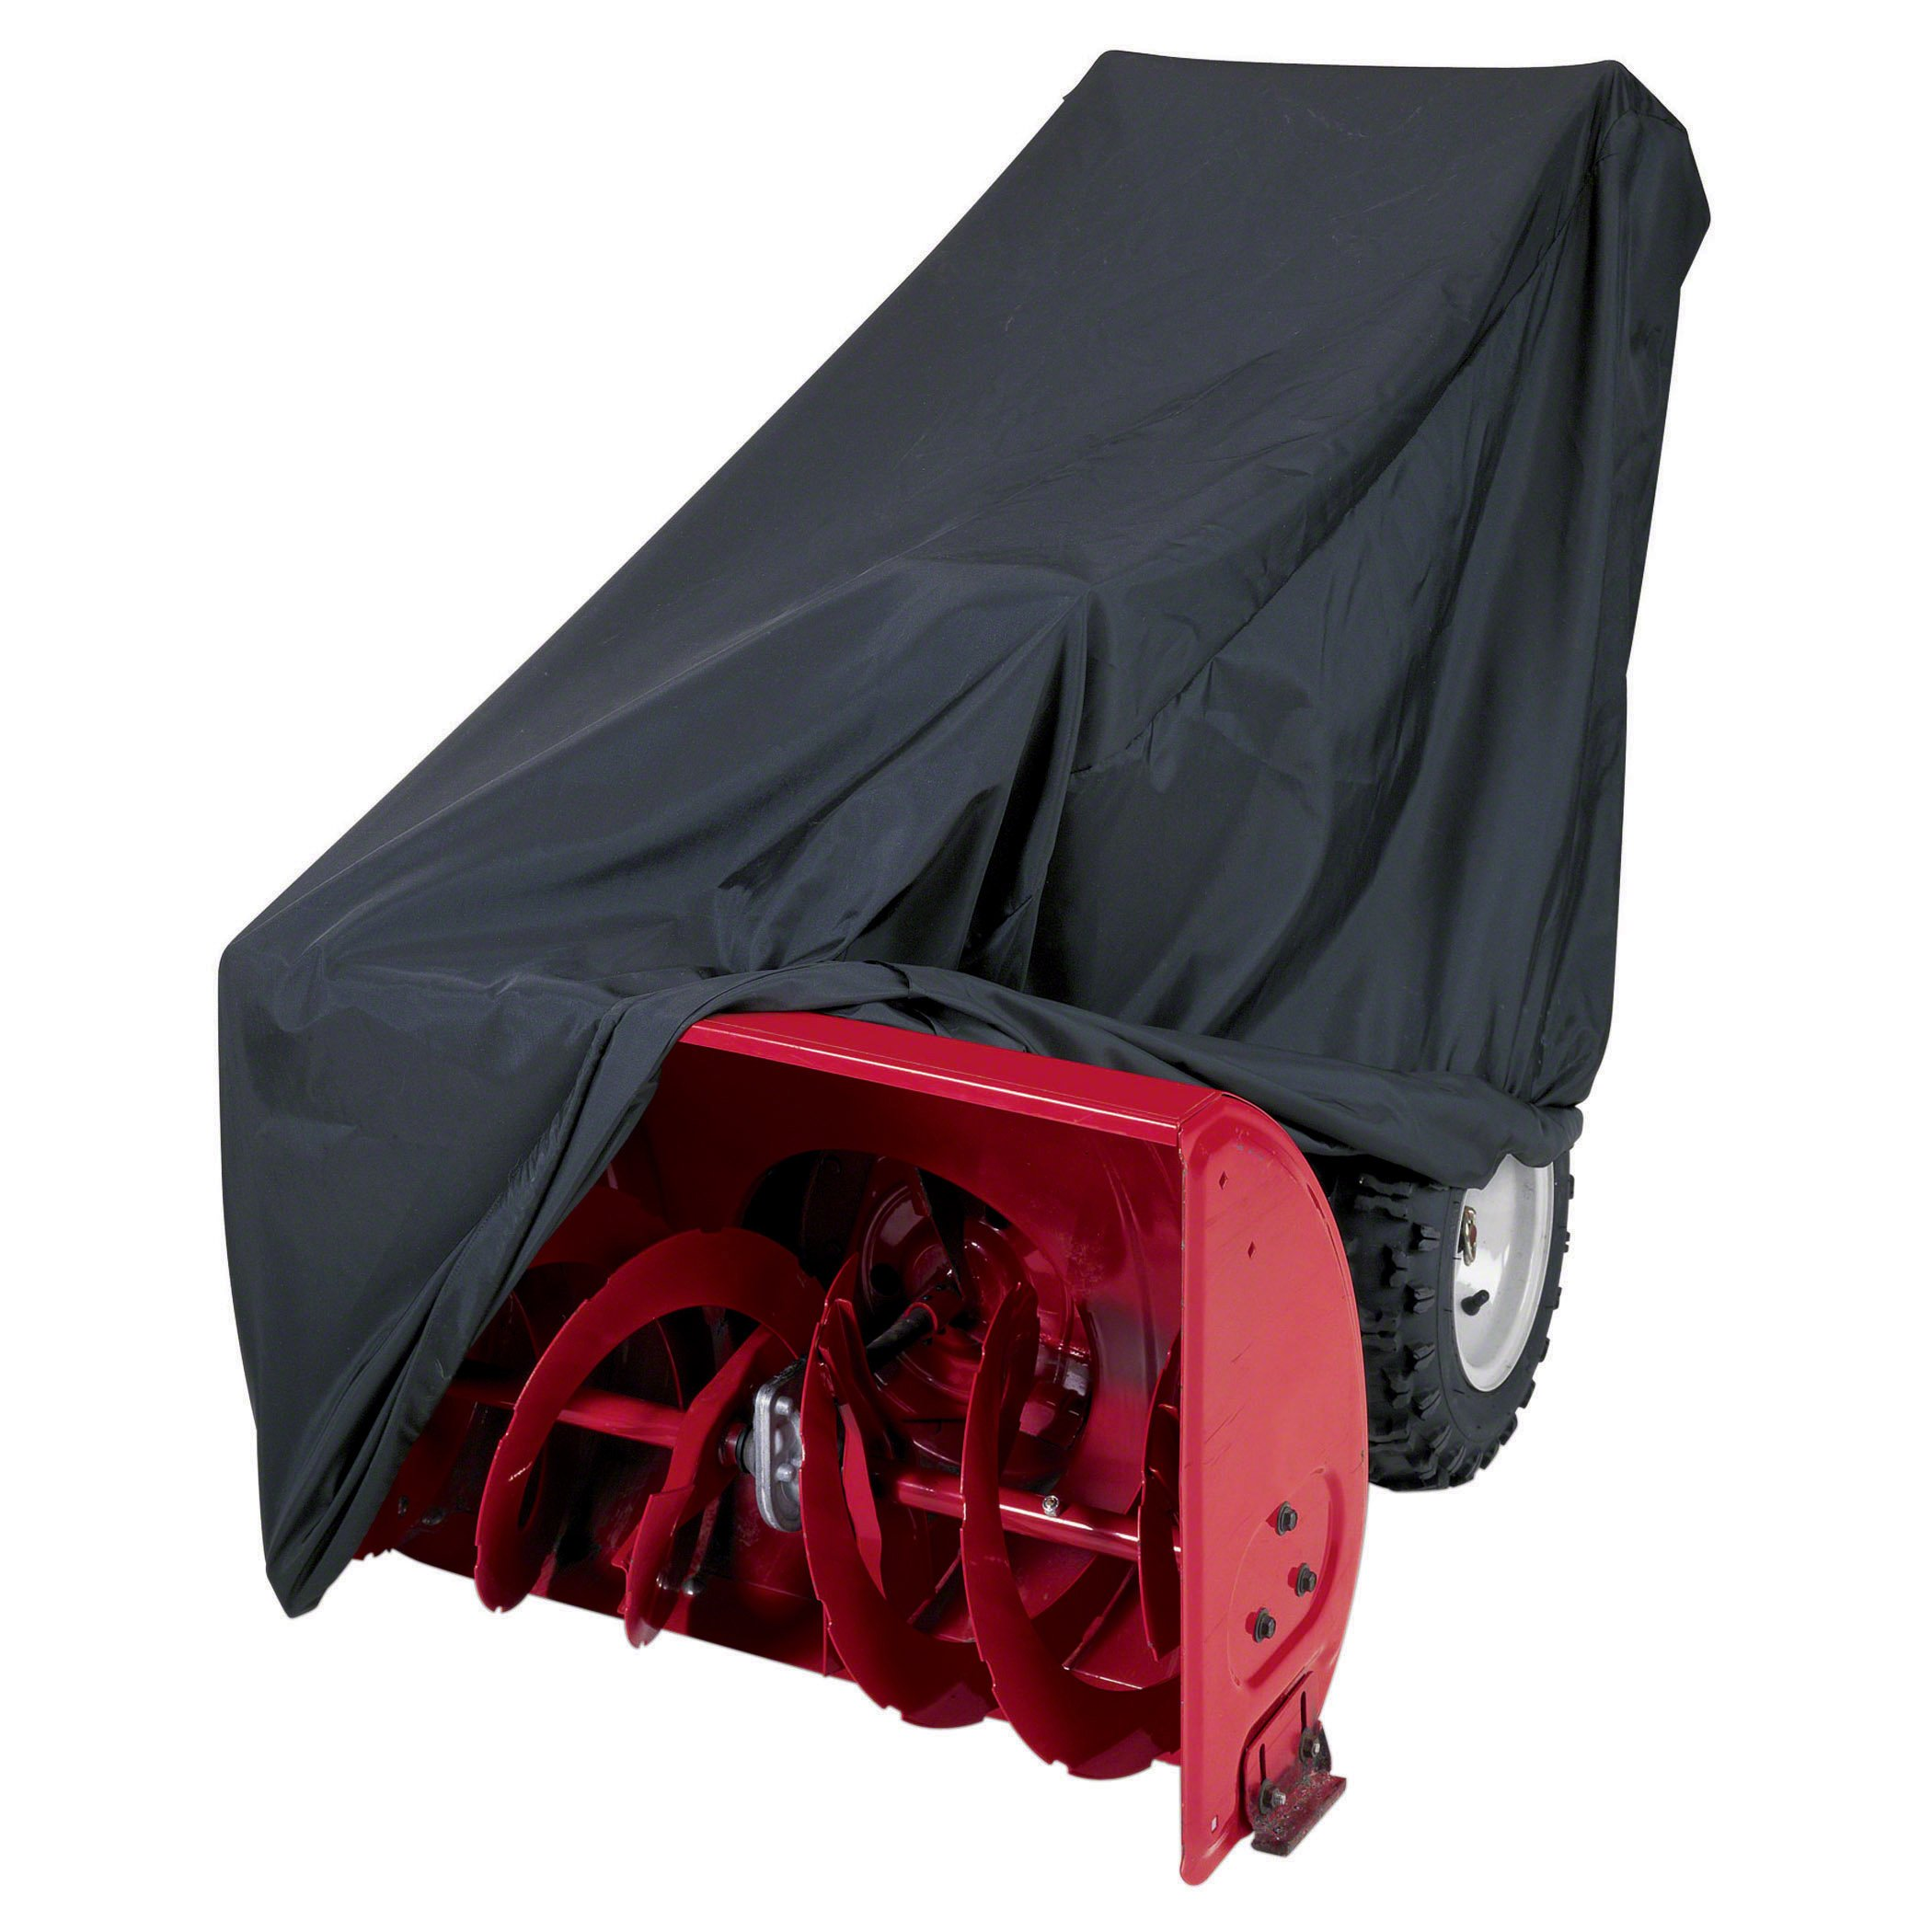 Classic Accessories 52-003-040105-00 Two-Stage Snow Thrower Cover product image